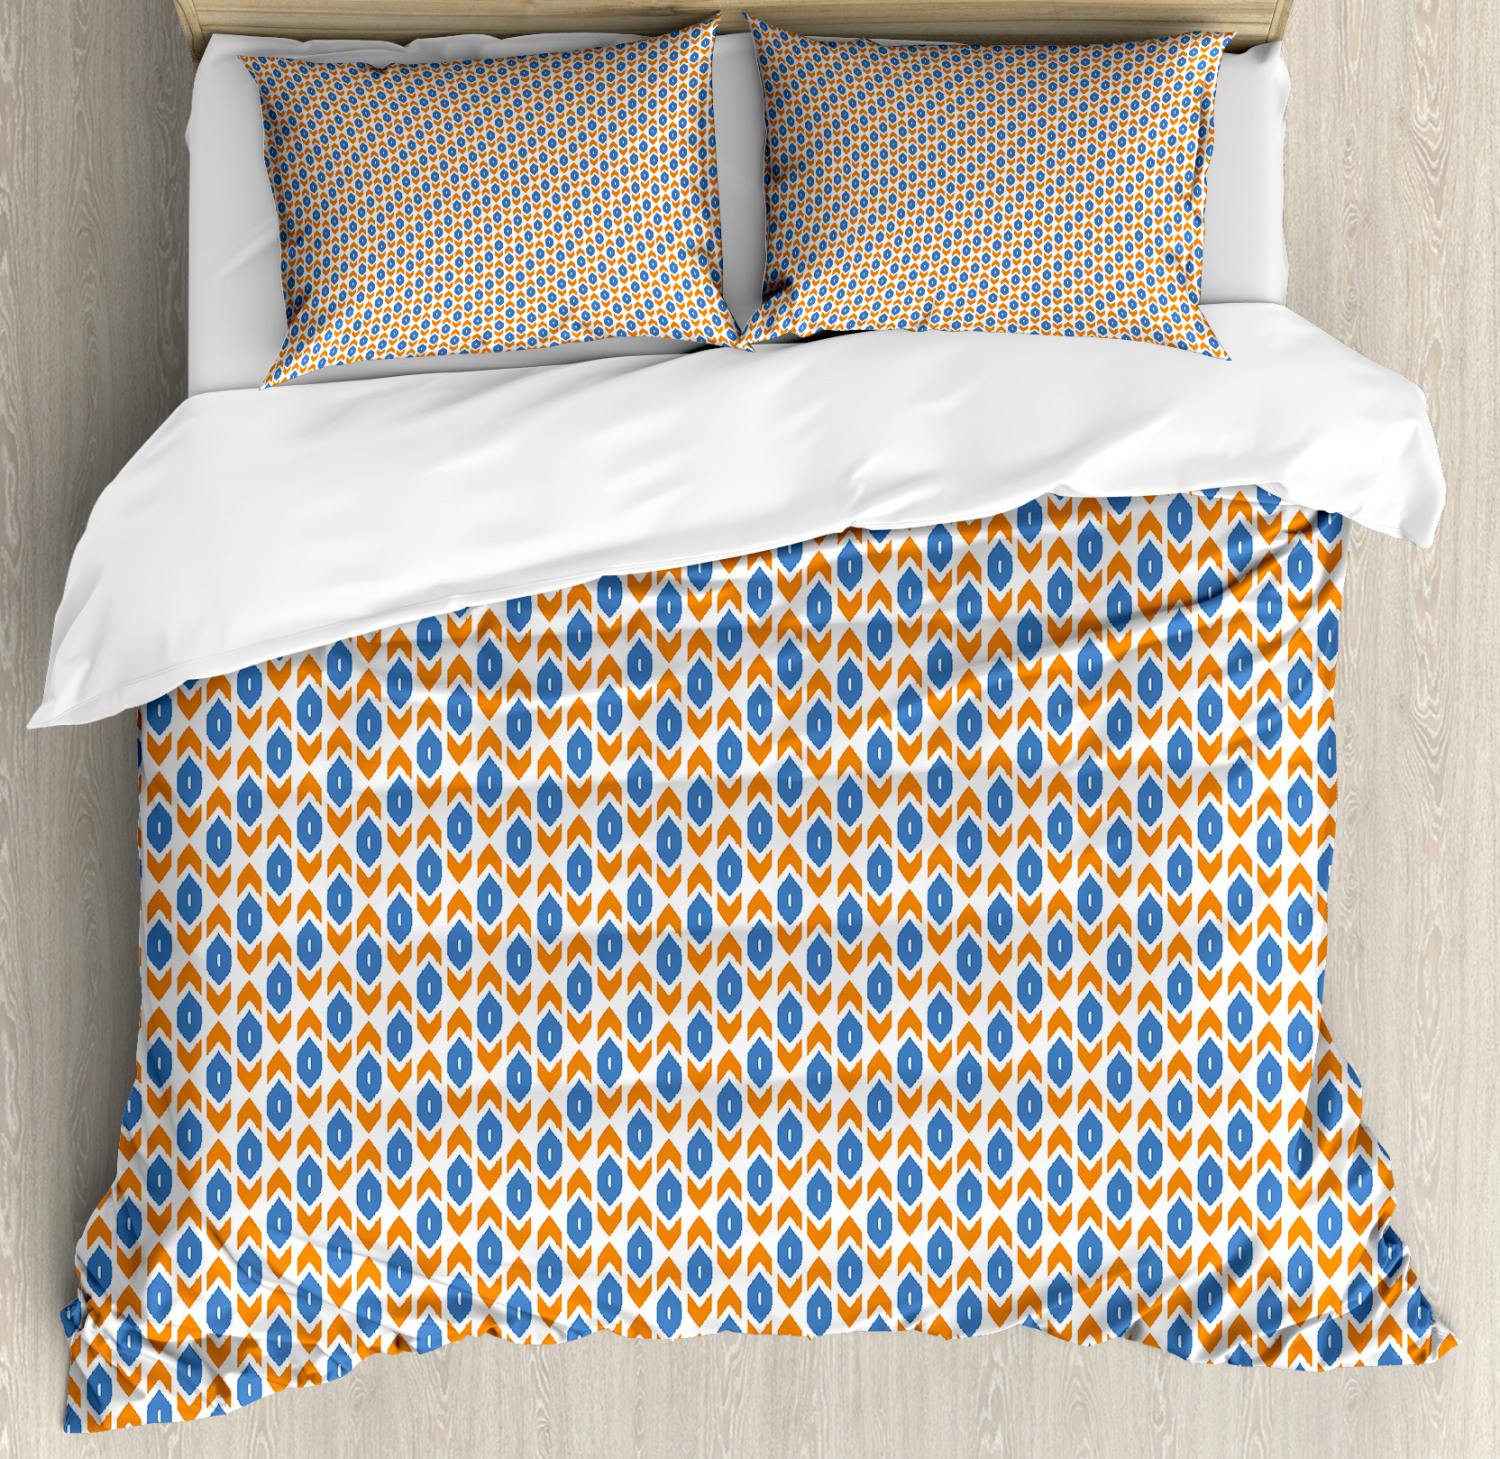 Ikat Duvet Cover Set with Pillow Shams Eastern Inspiration Arrow Print